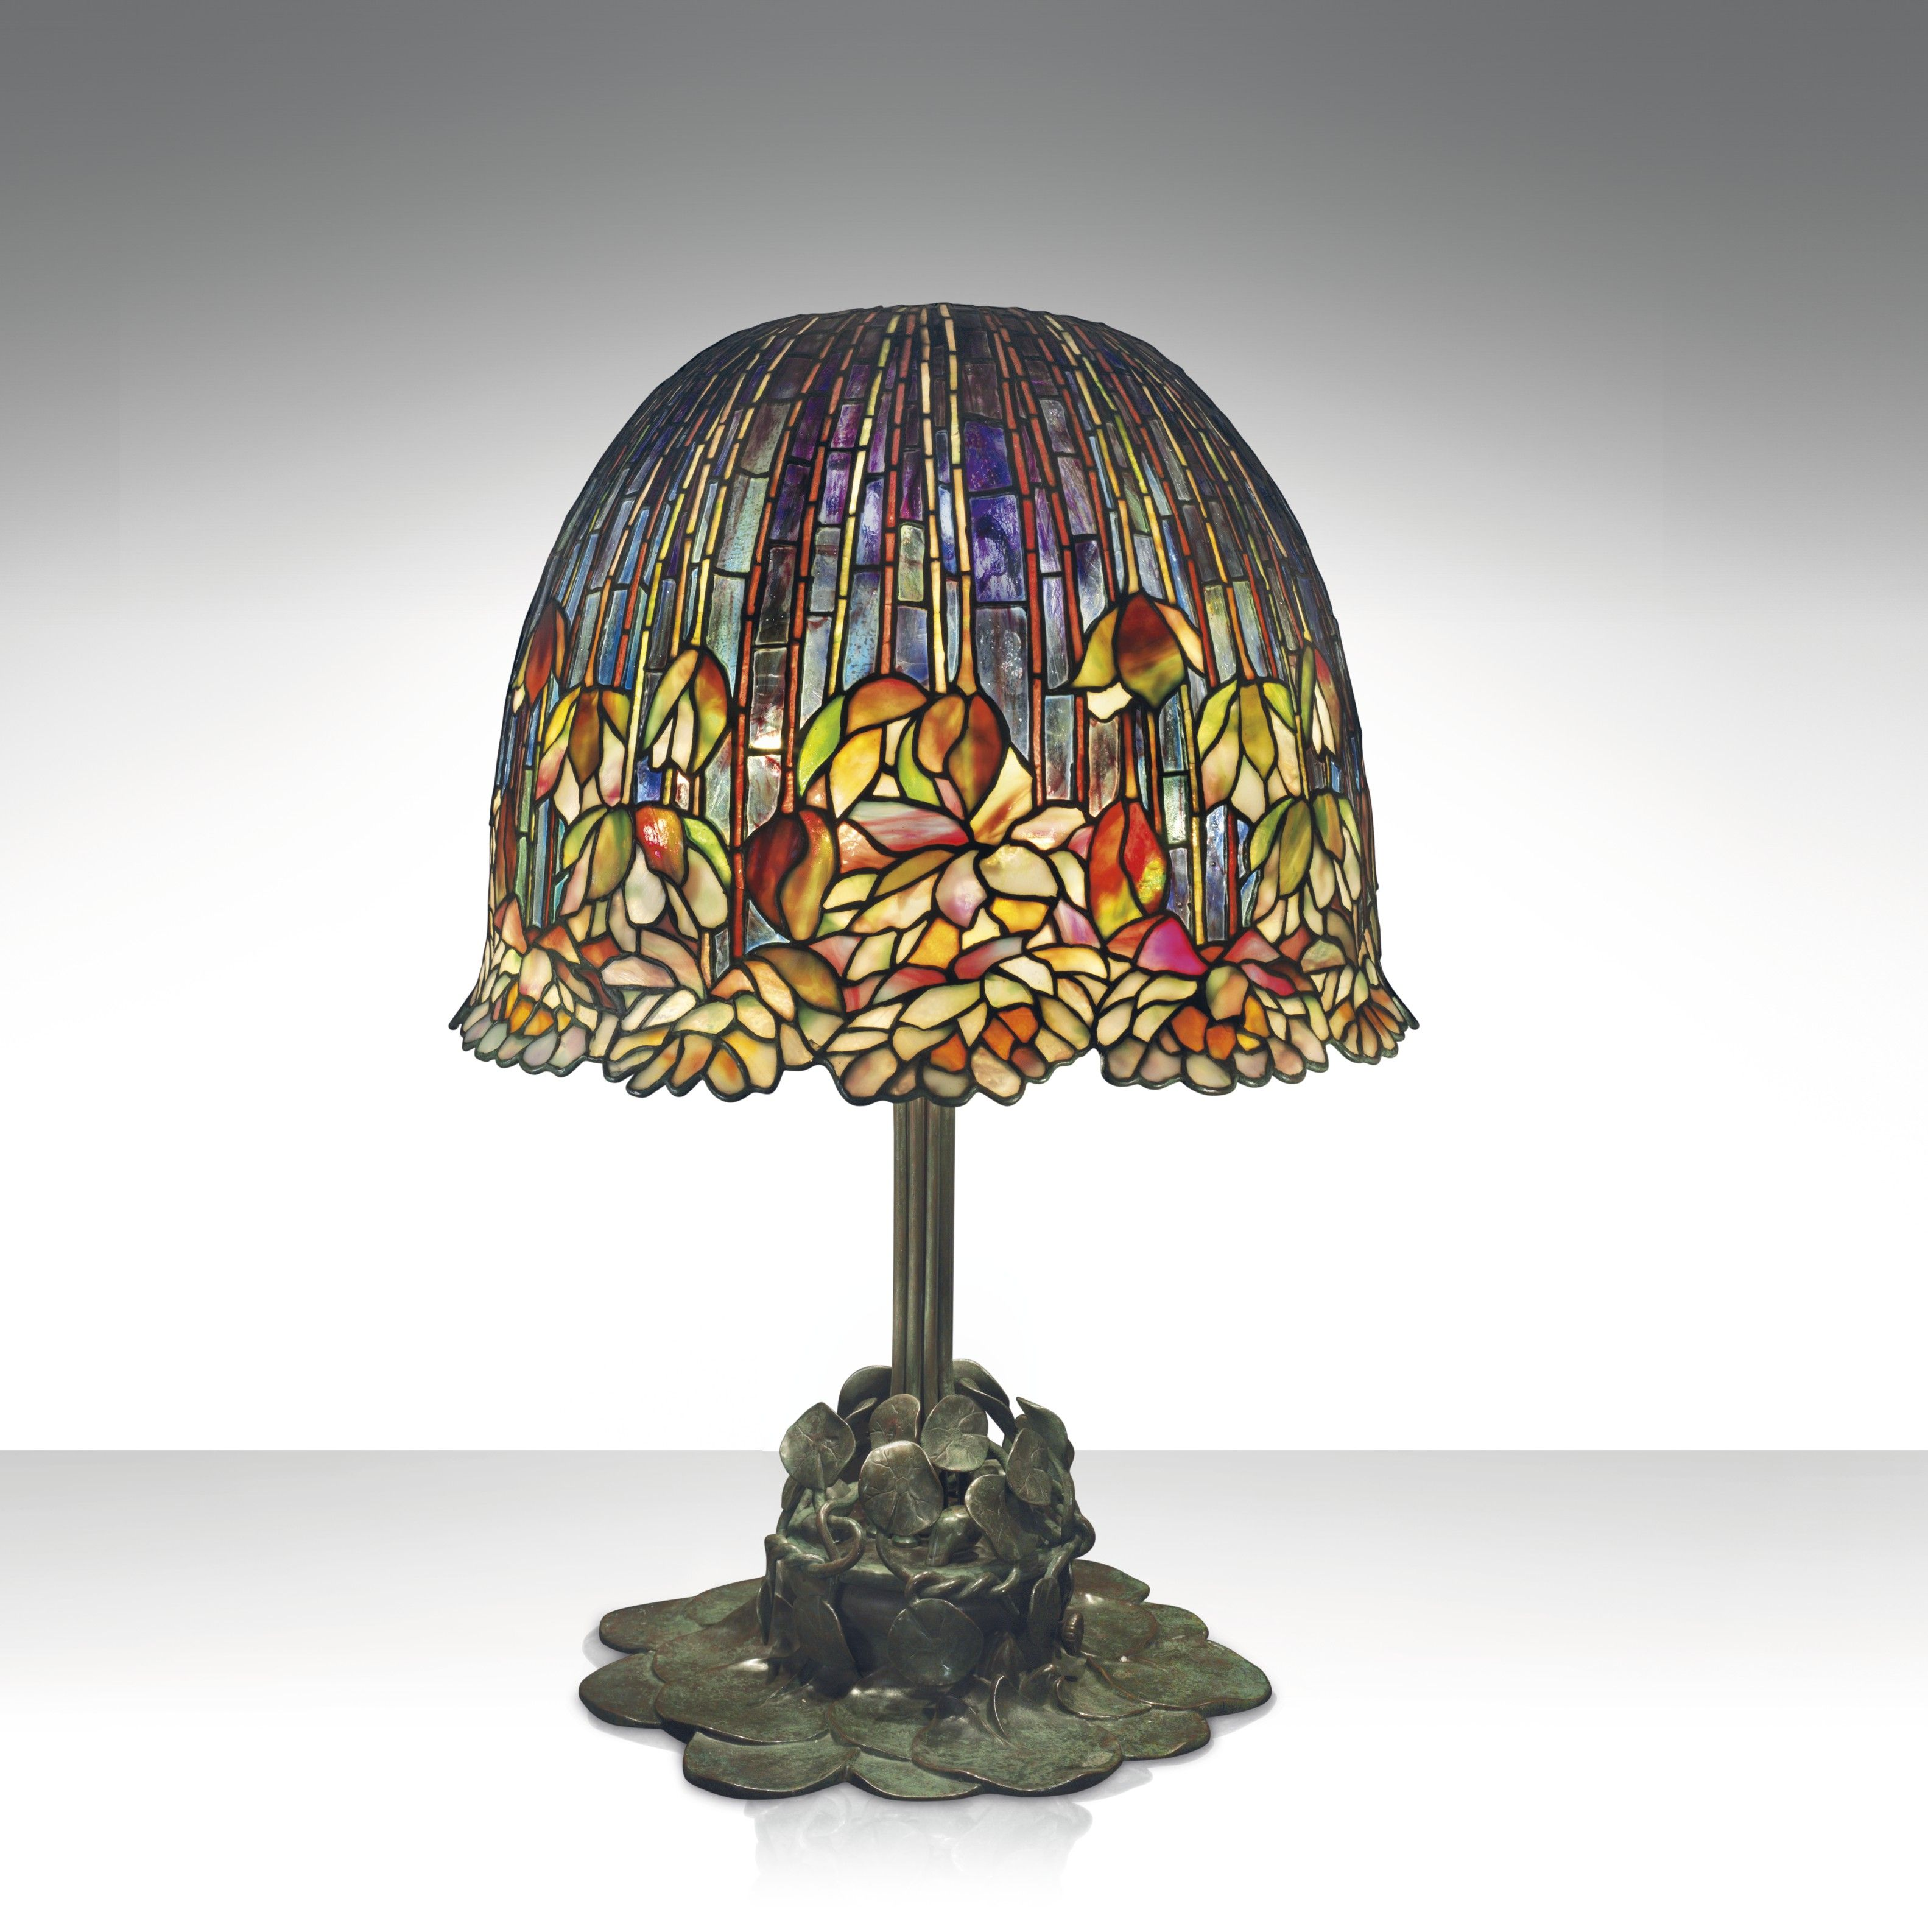 A Tiffany Lamp Just Sold For $3.37 Million At Auction